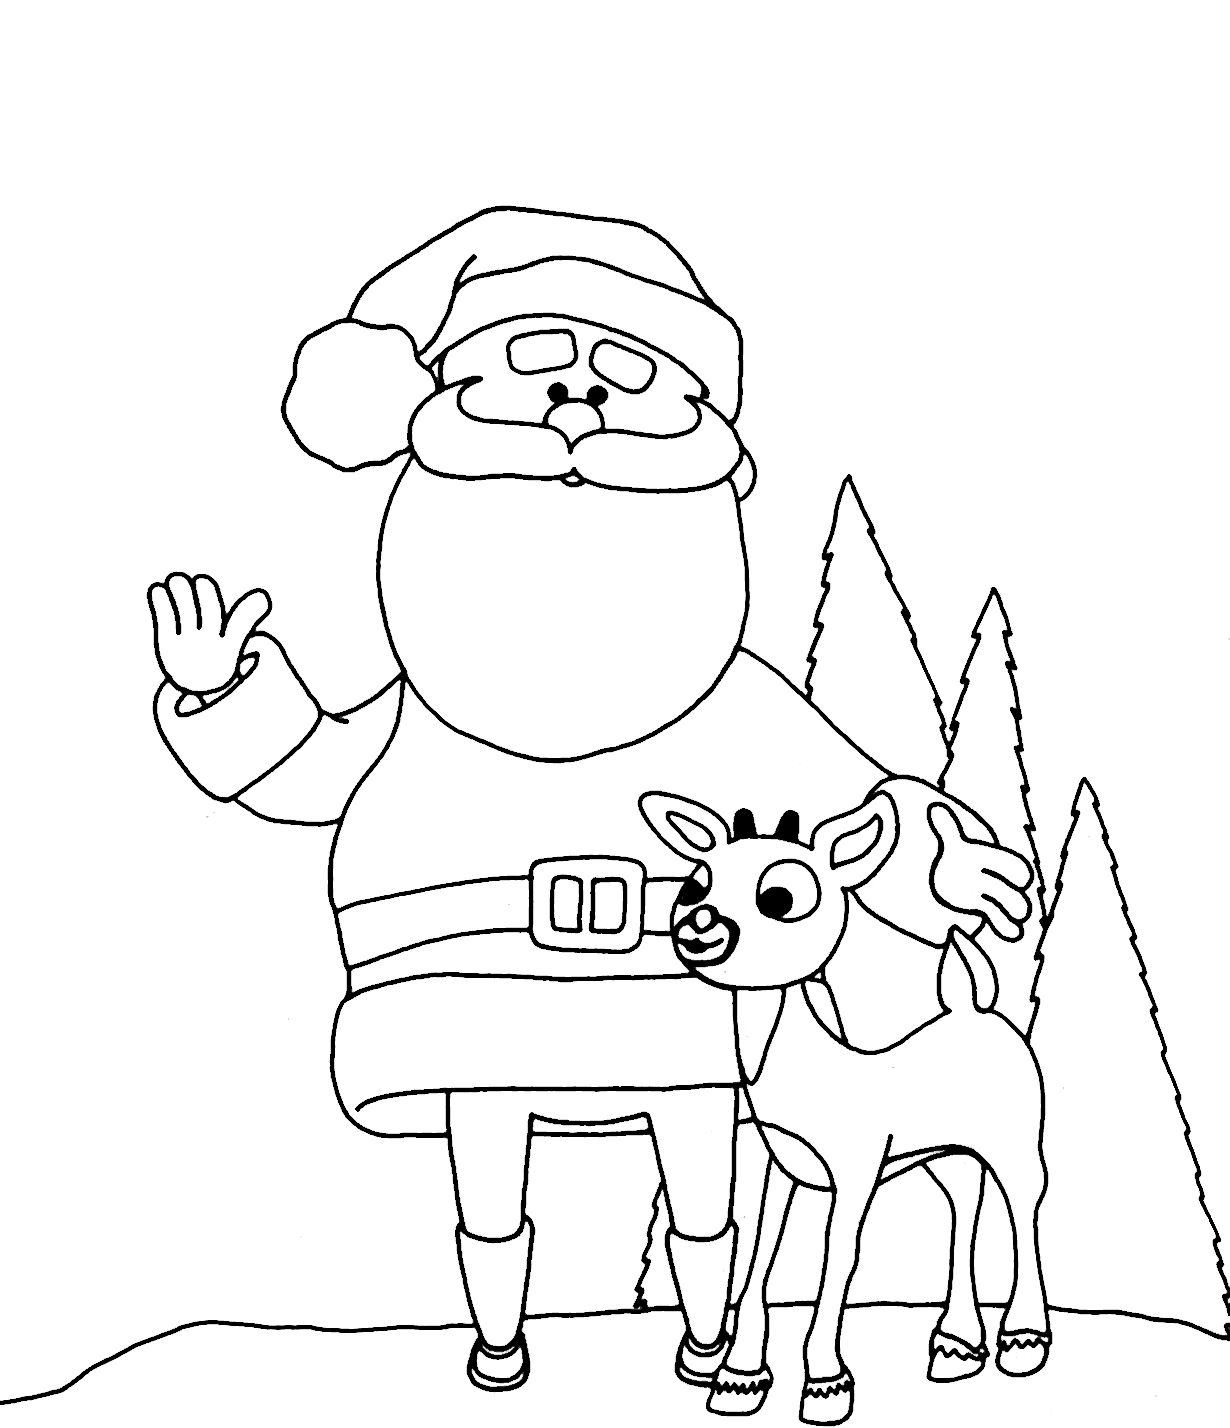 santa coloring printable pages | Yucca Flats, N.M.: Wenchkin's Coloring Pages - Rankin Bass ...